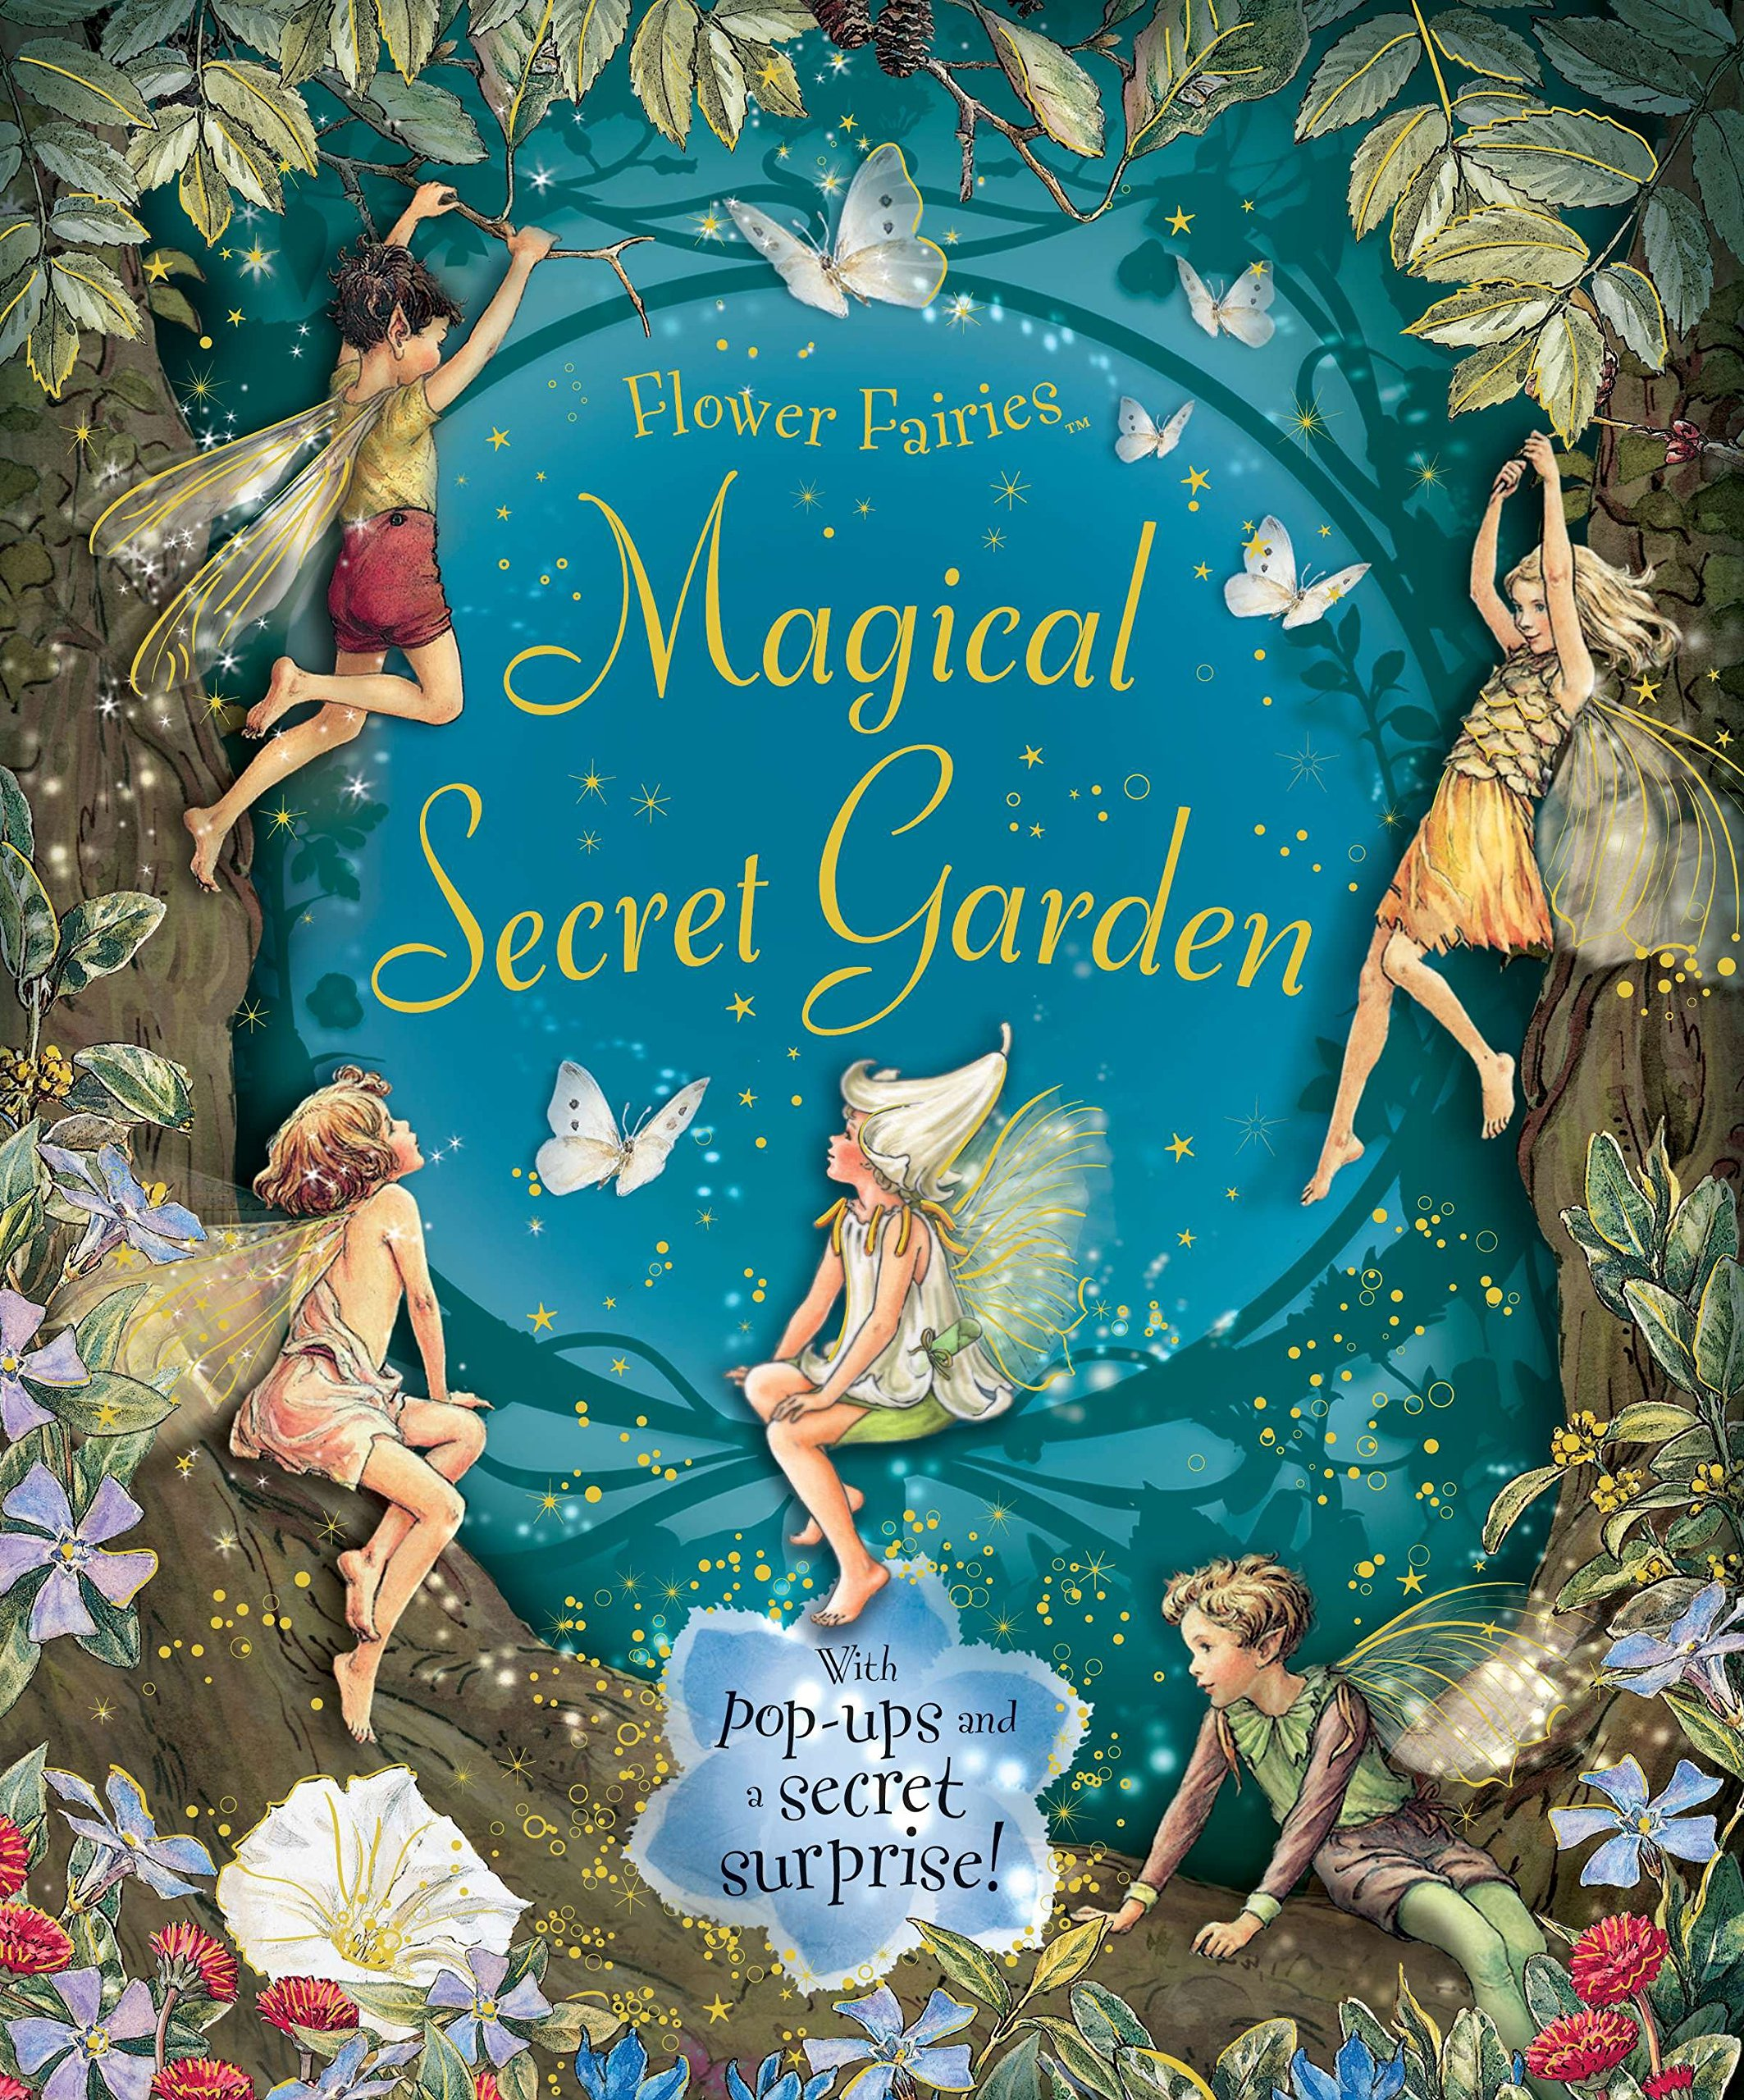 Magical Secret Garden (Flower Fairies)